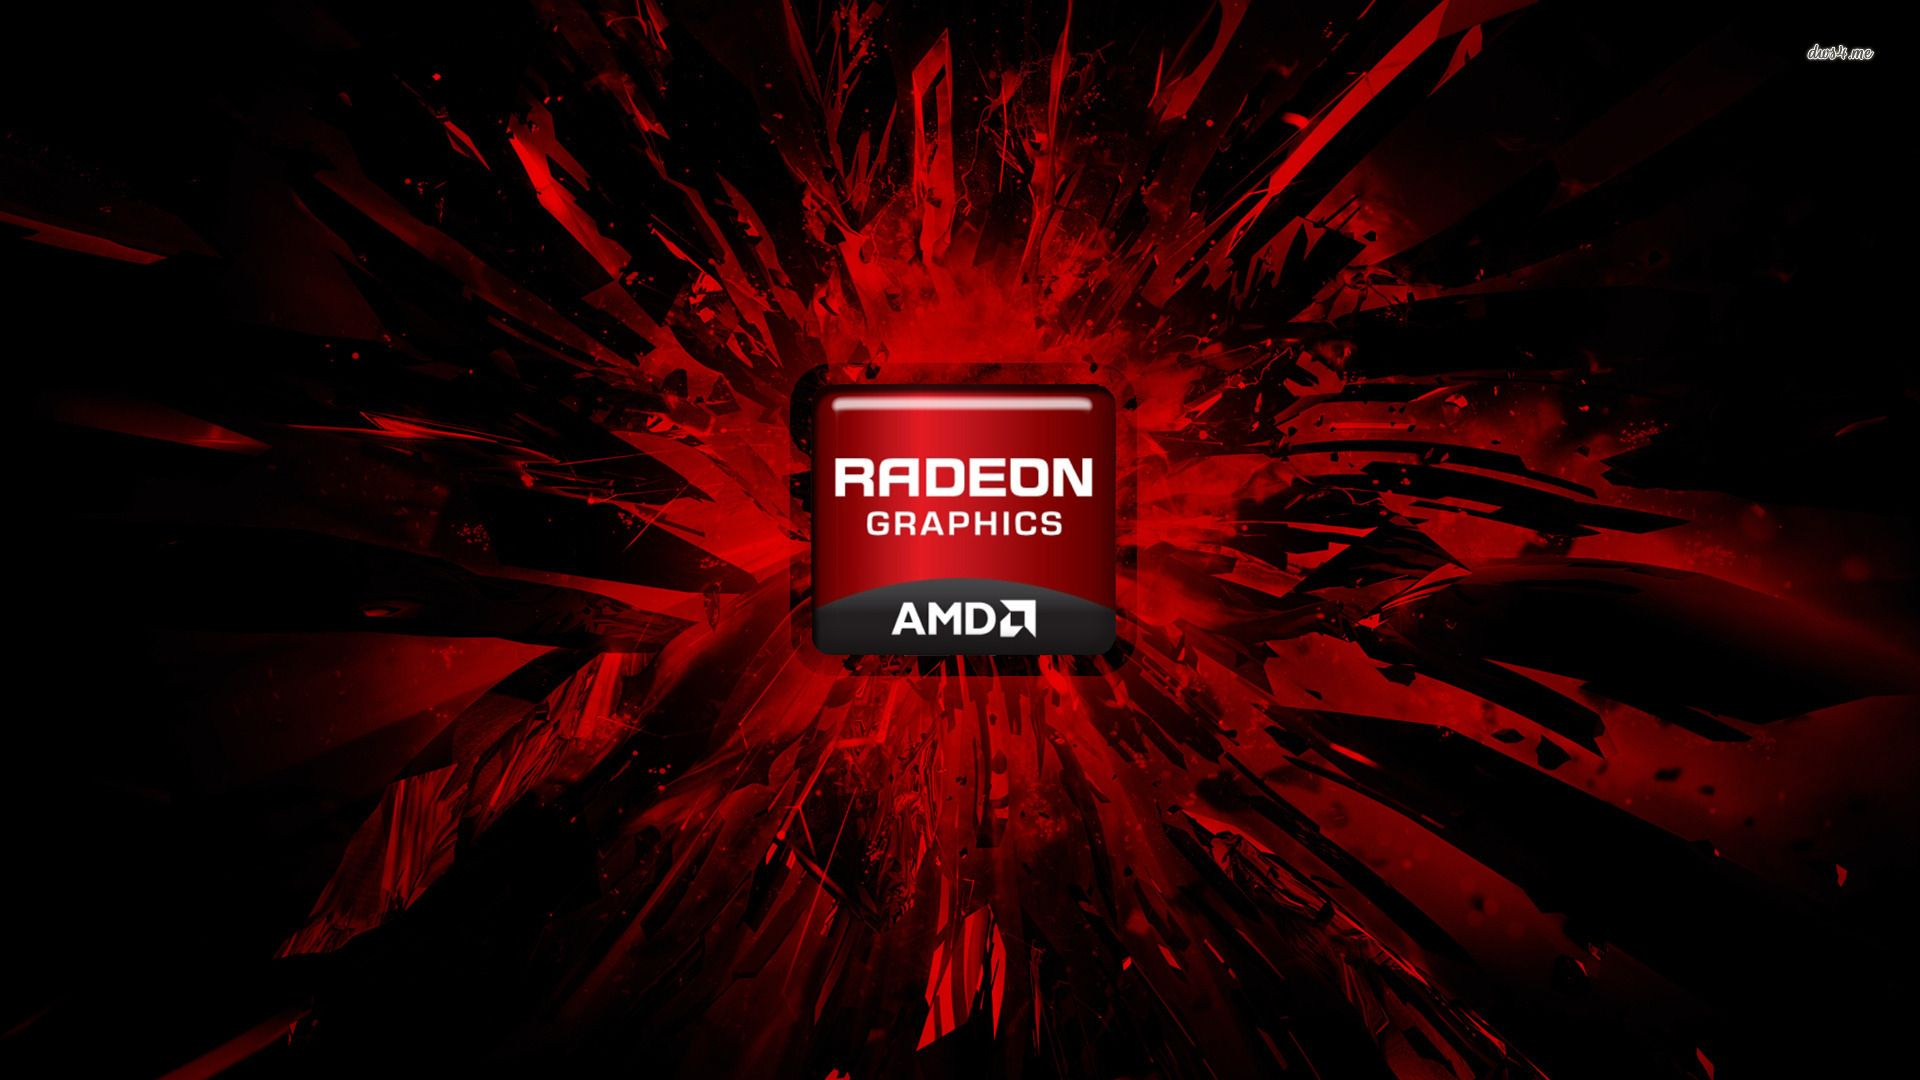 Radeon Wallpapers